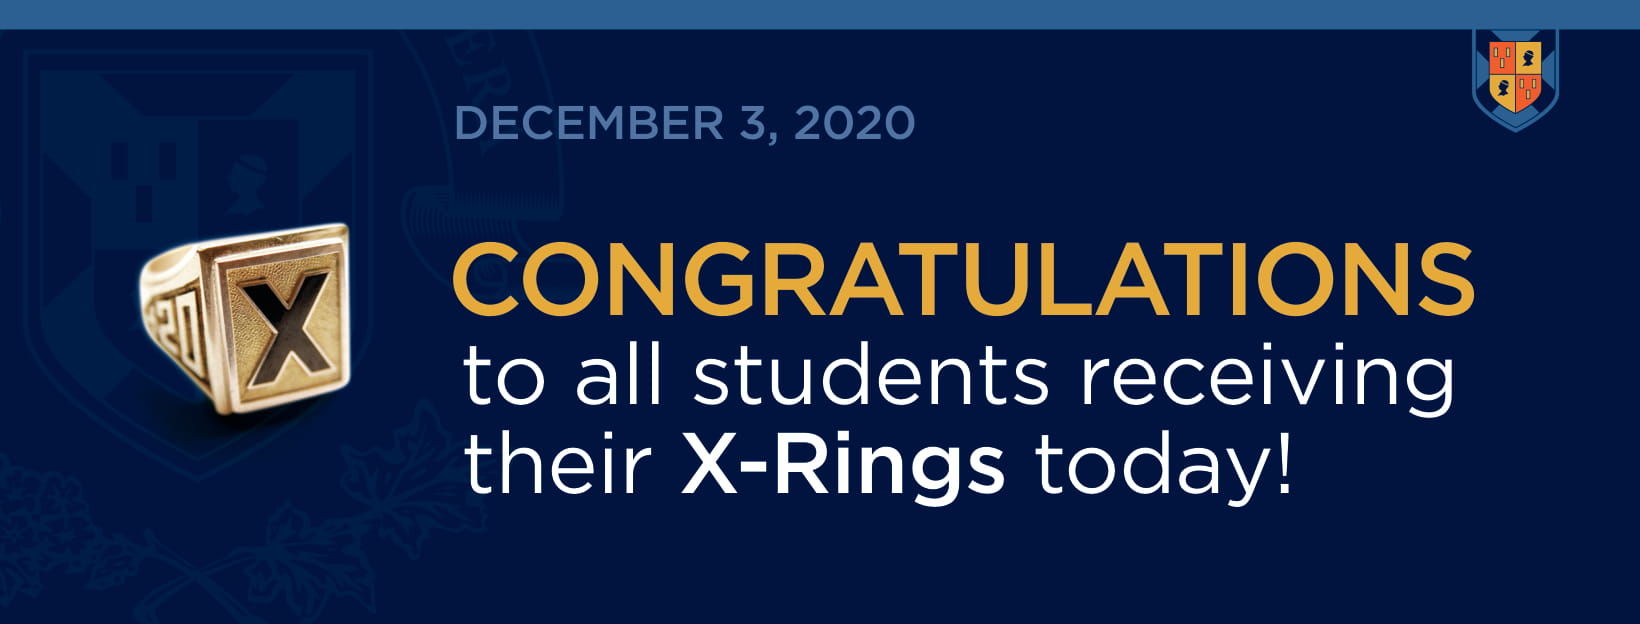 X-Ring FB Covers - congrats to all